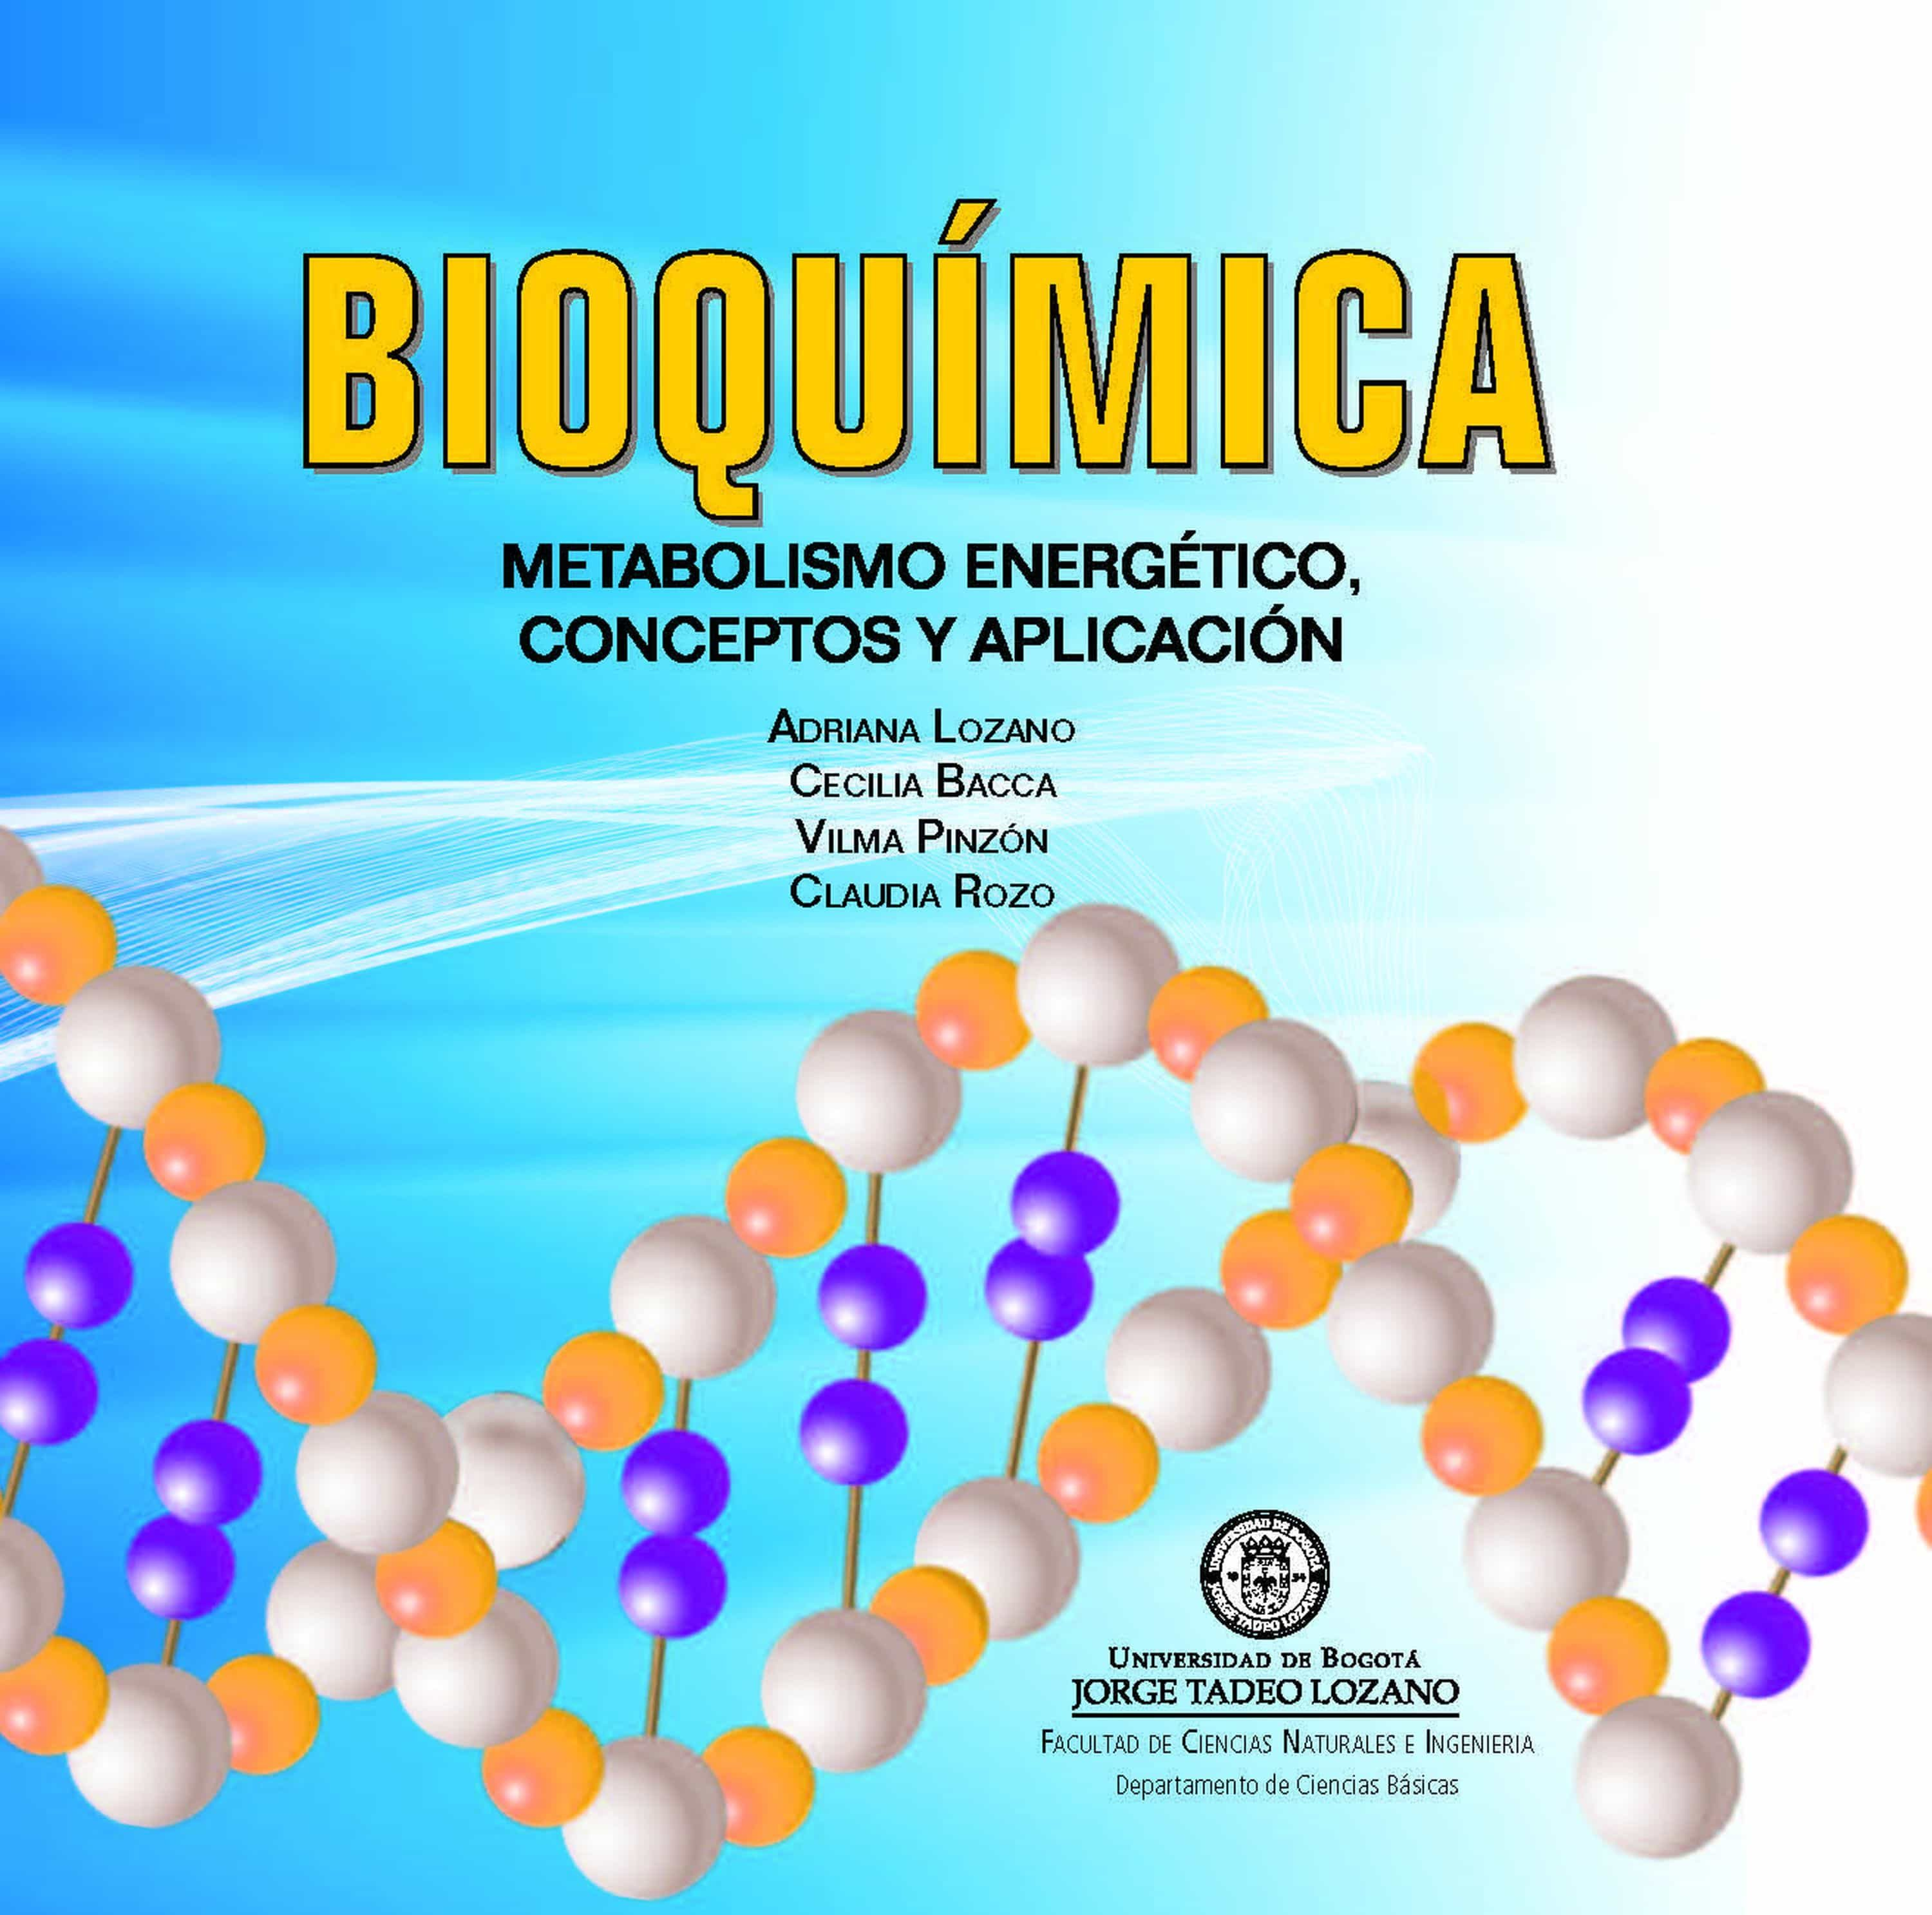 Bioquimica   www.pixshark.com - Images Galleries With A Bite!